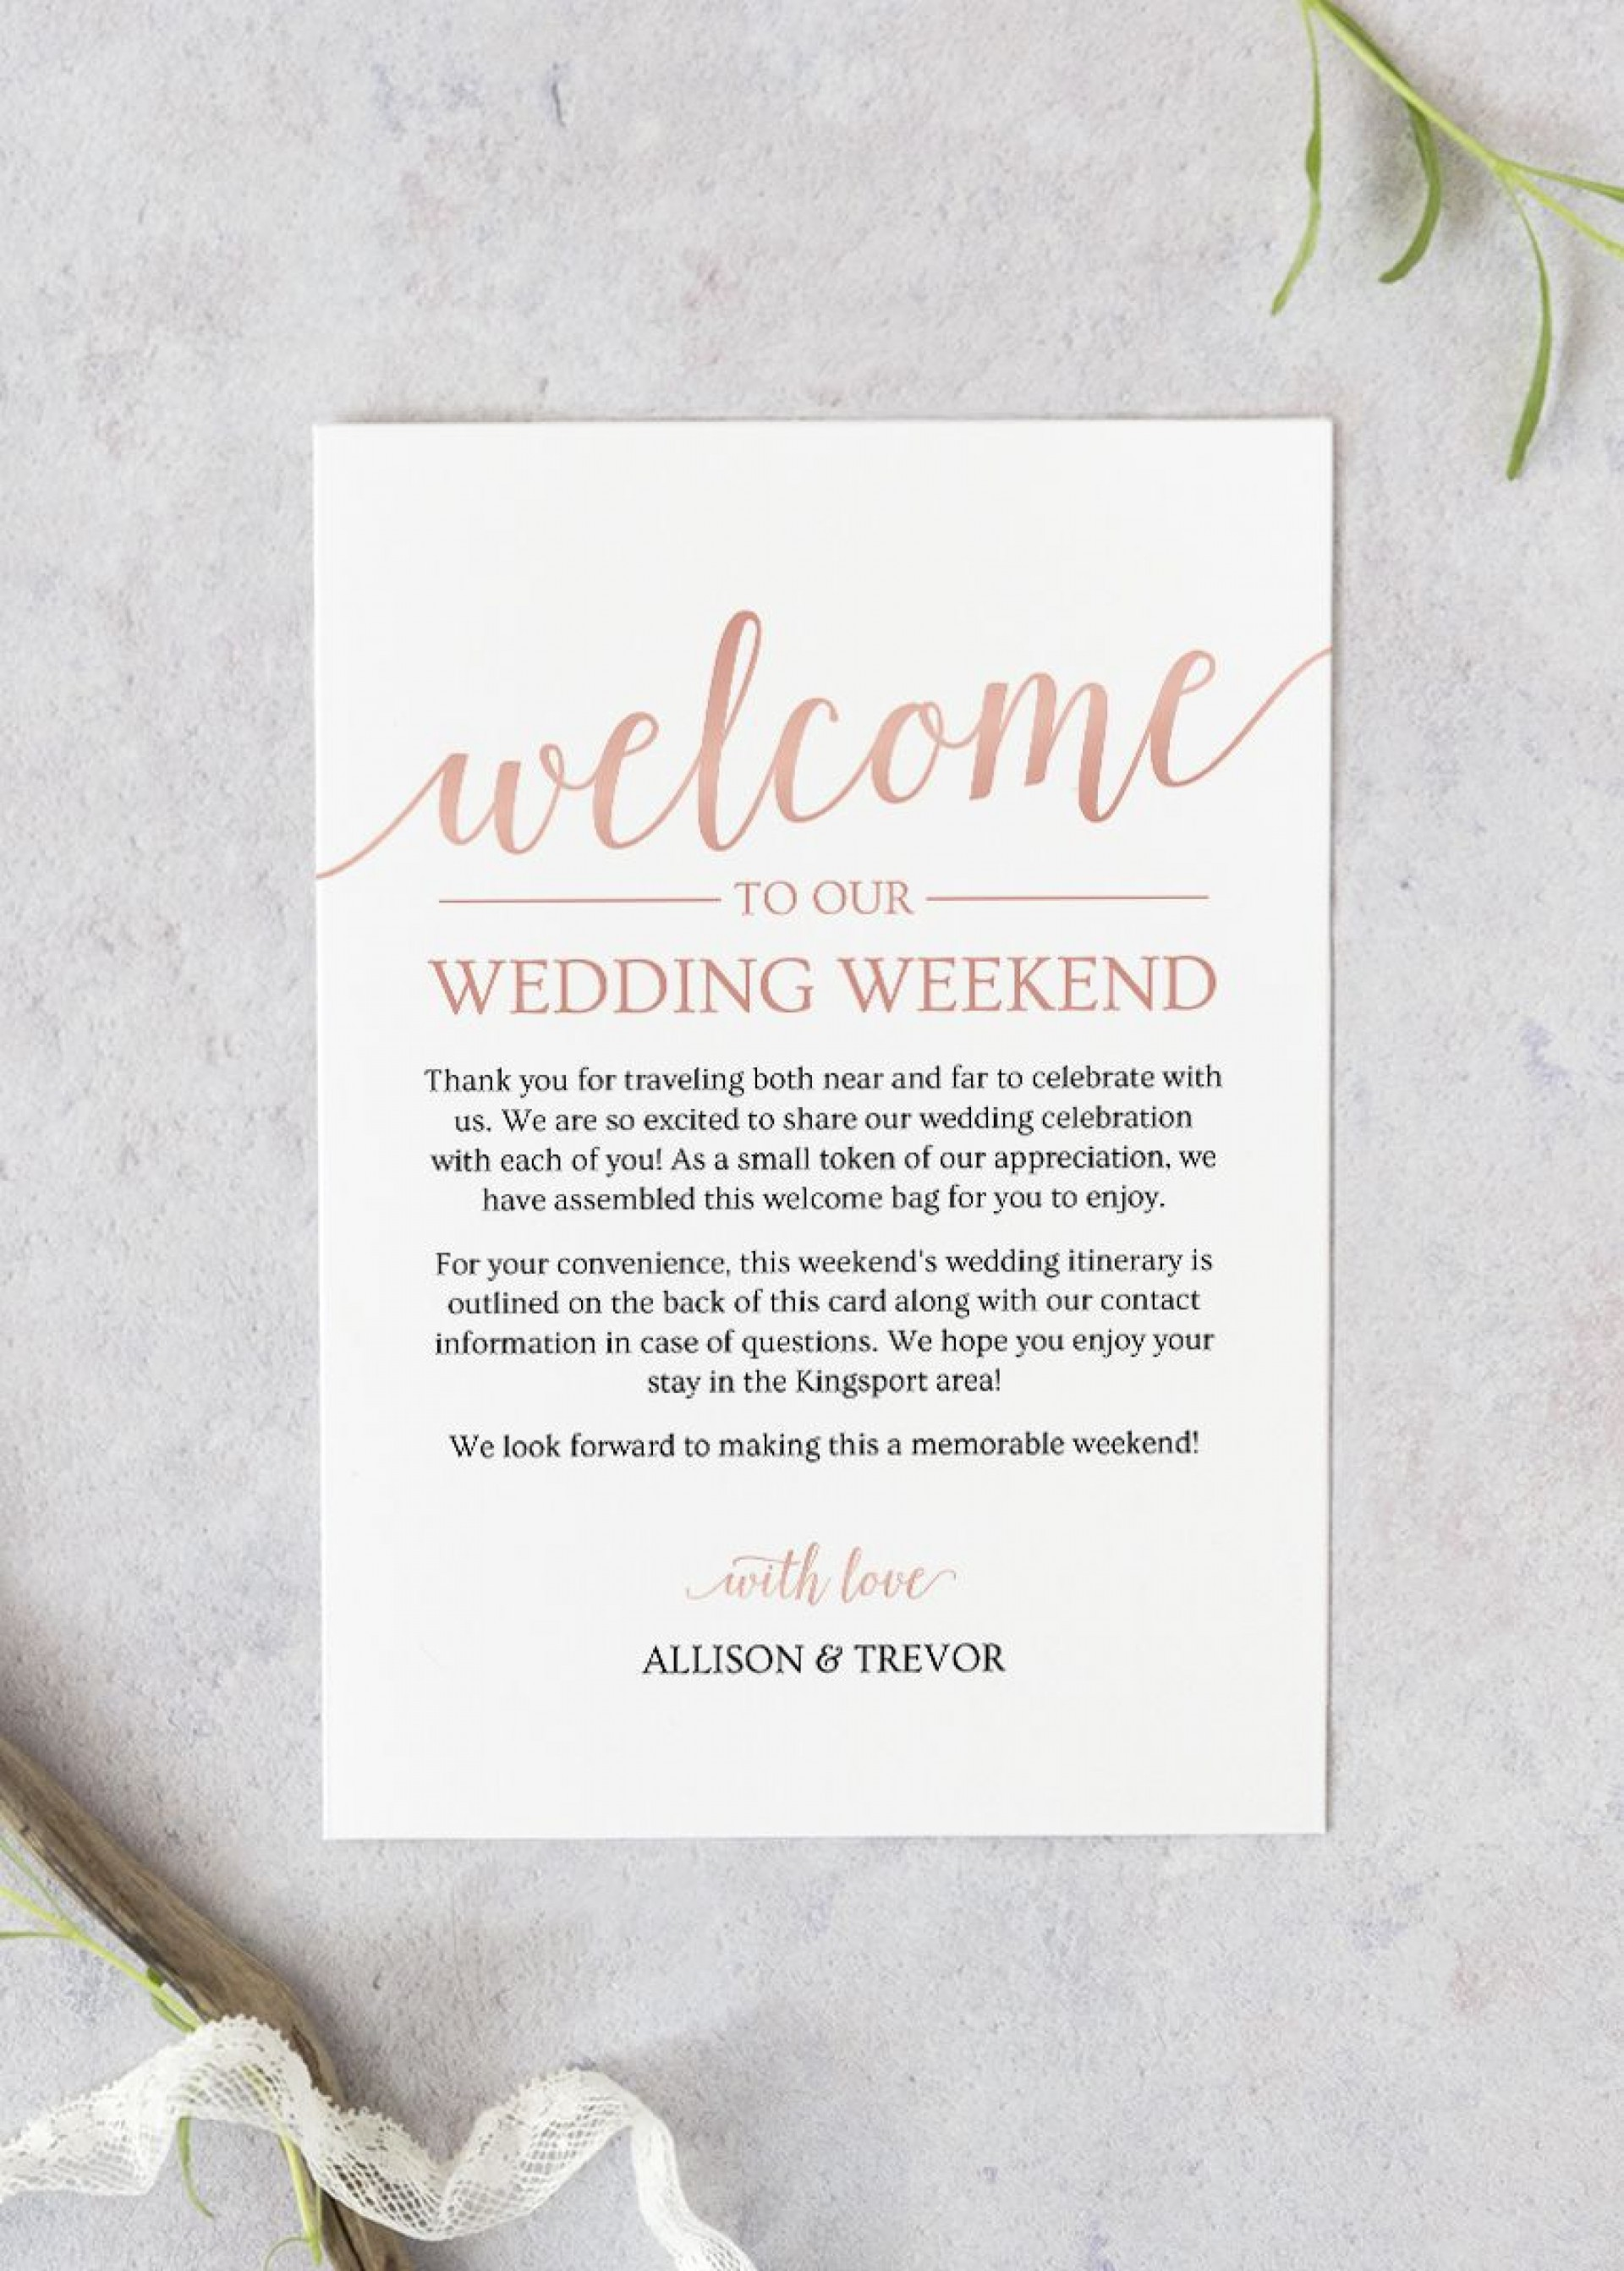 003 Stunning Wedding Guest Welcome Letter Template Image 1920